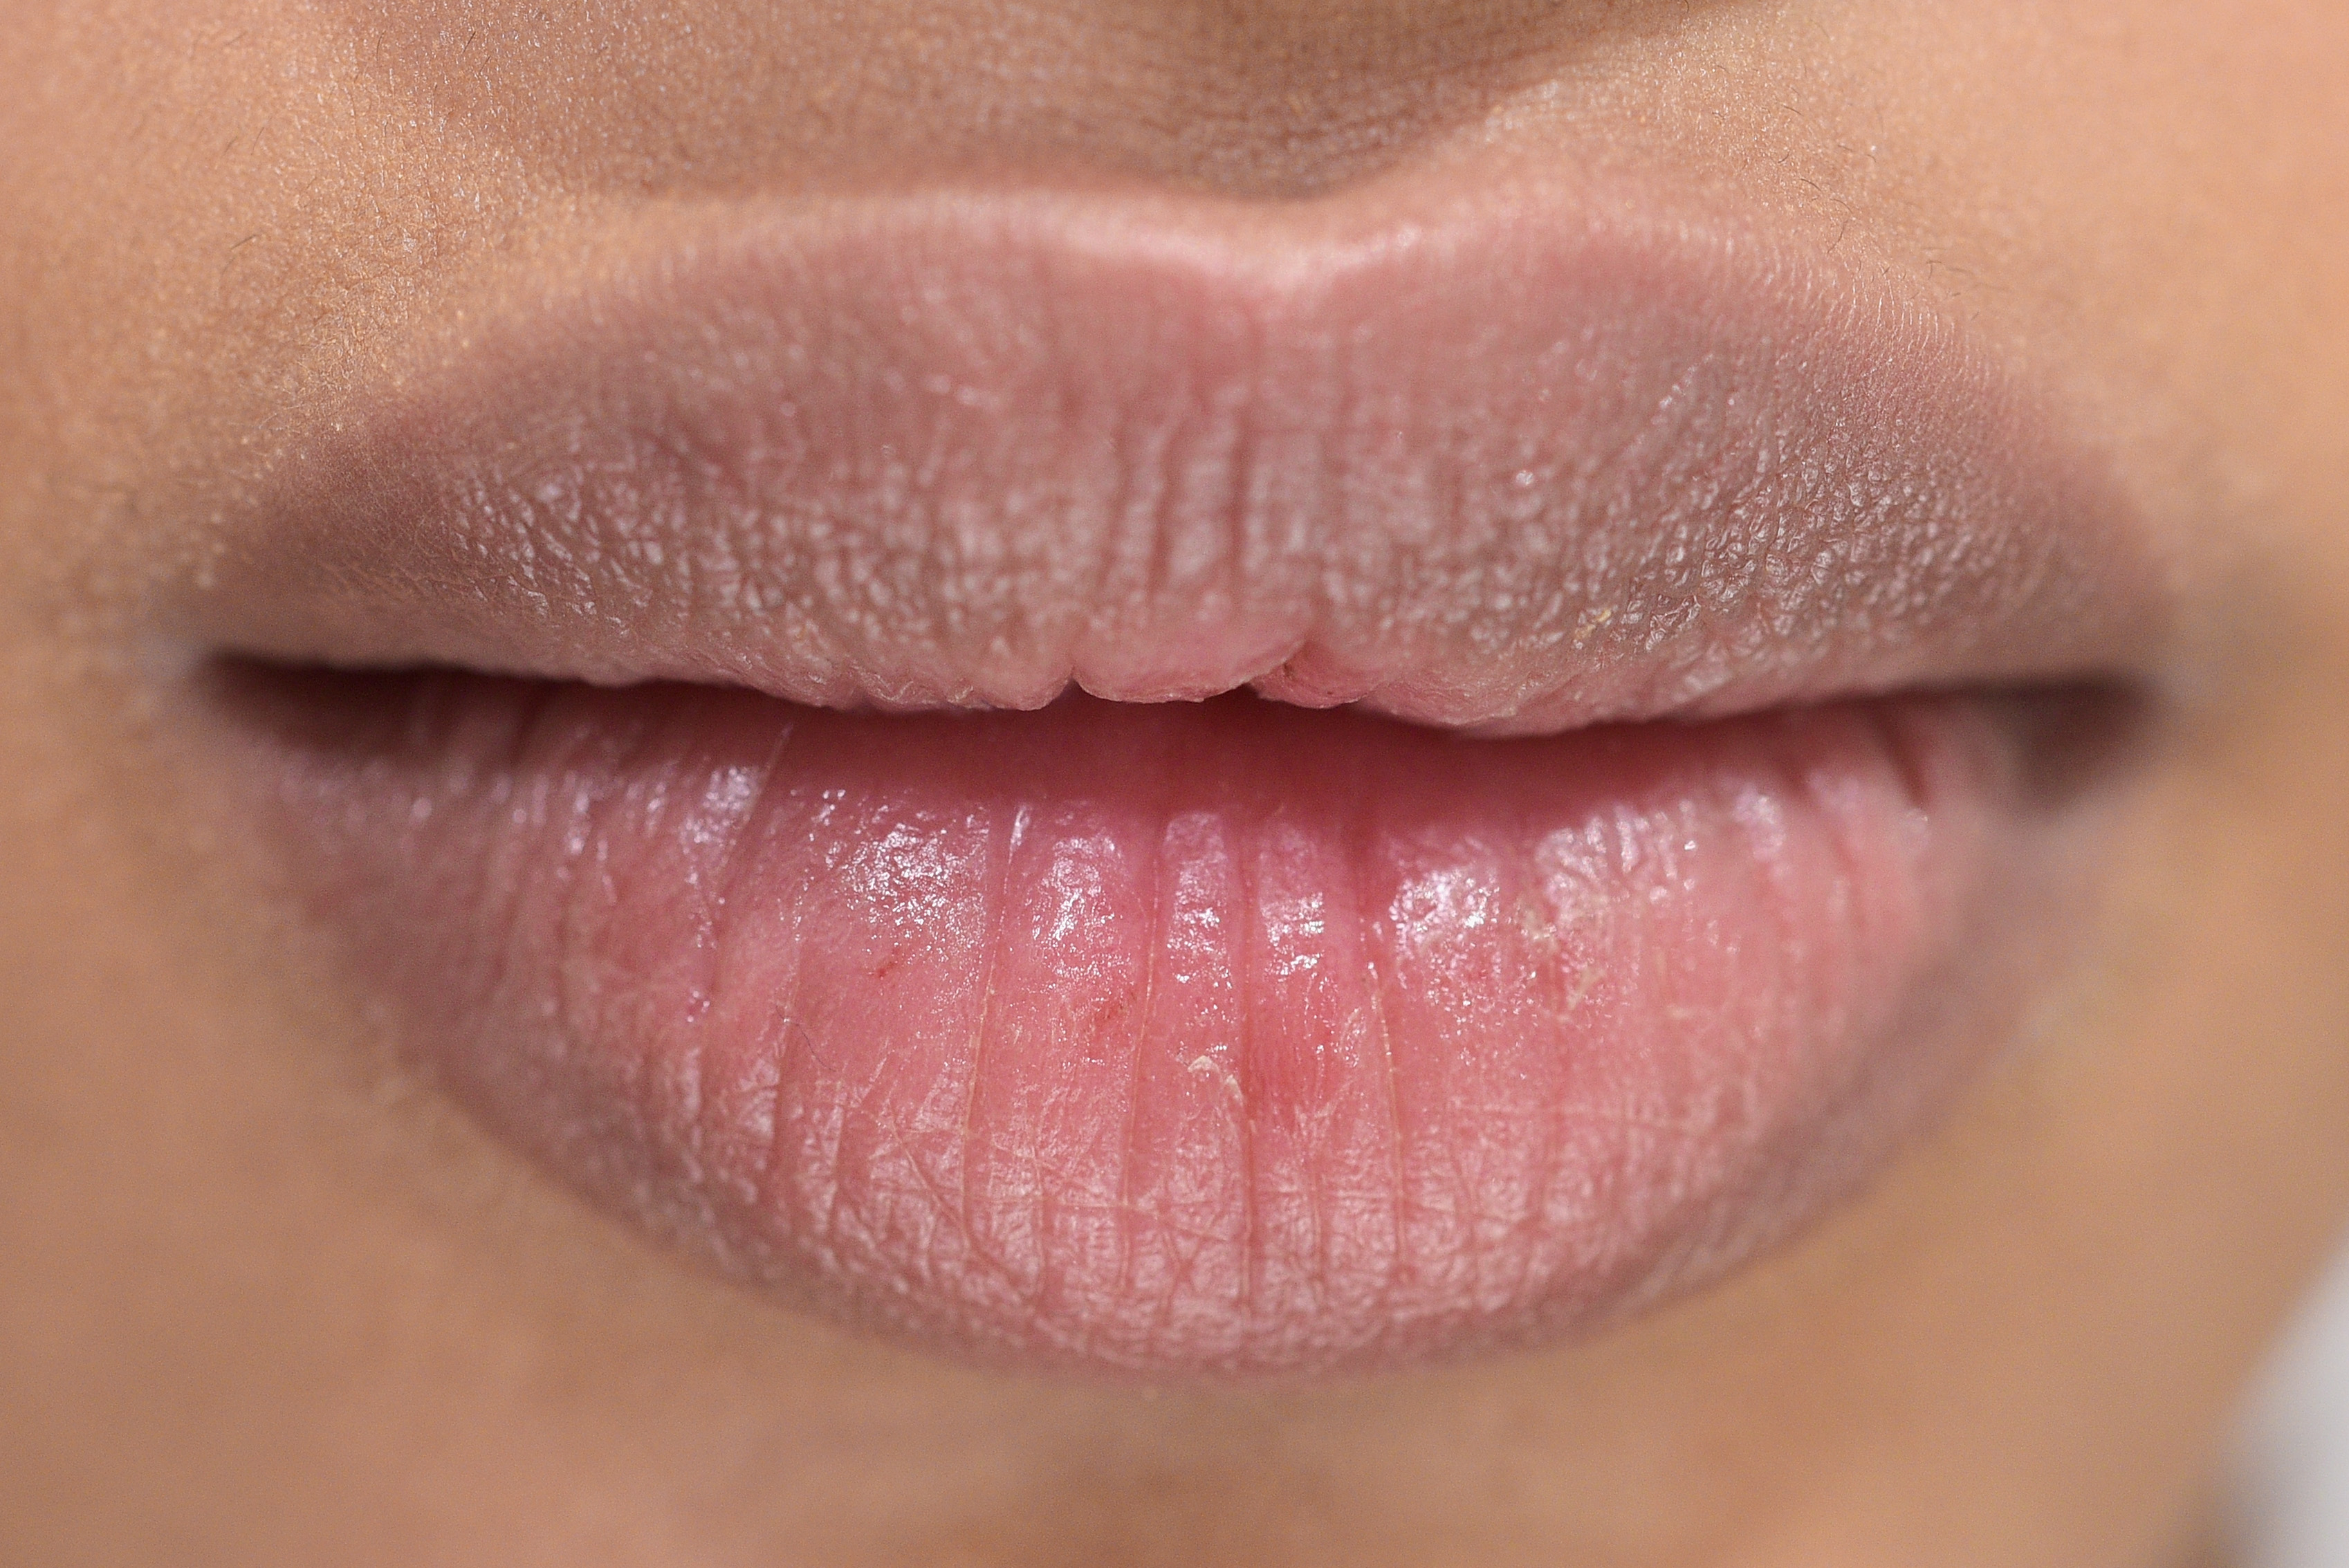 How To Treat Chapped Lips Overnight In Three Easy Steps — PHOTOS